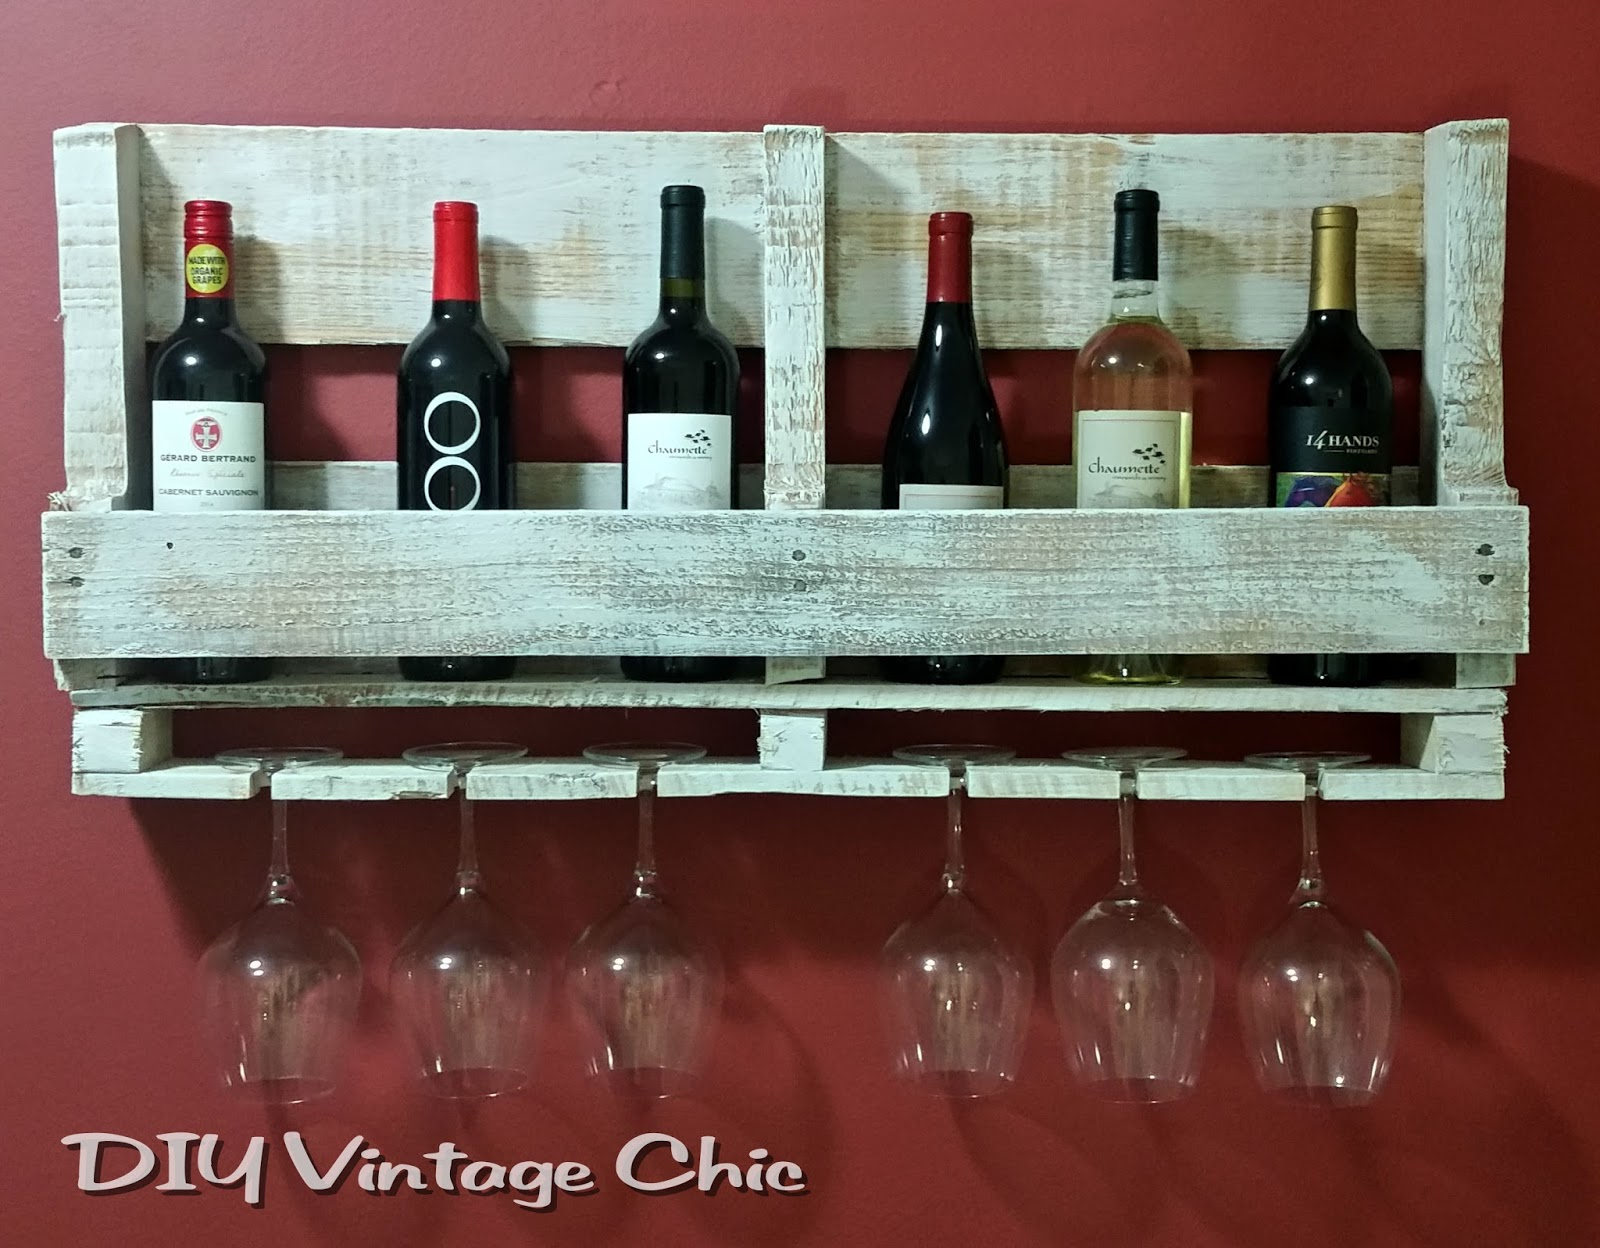 DIY Vintage Chic: Pallet Wine Rack